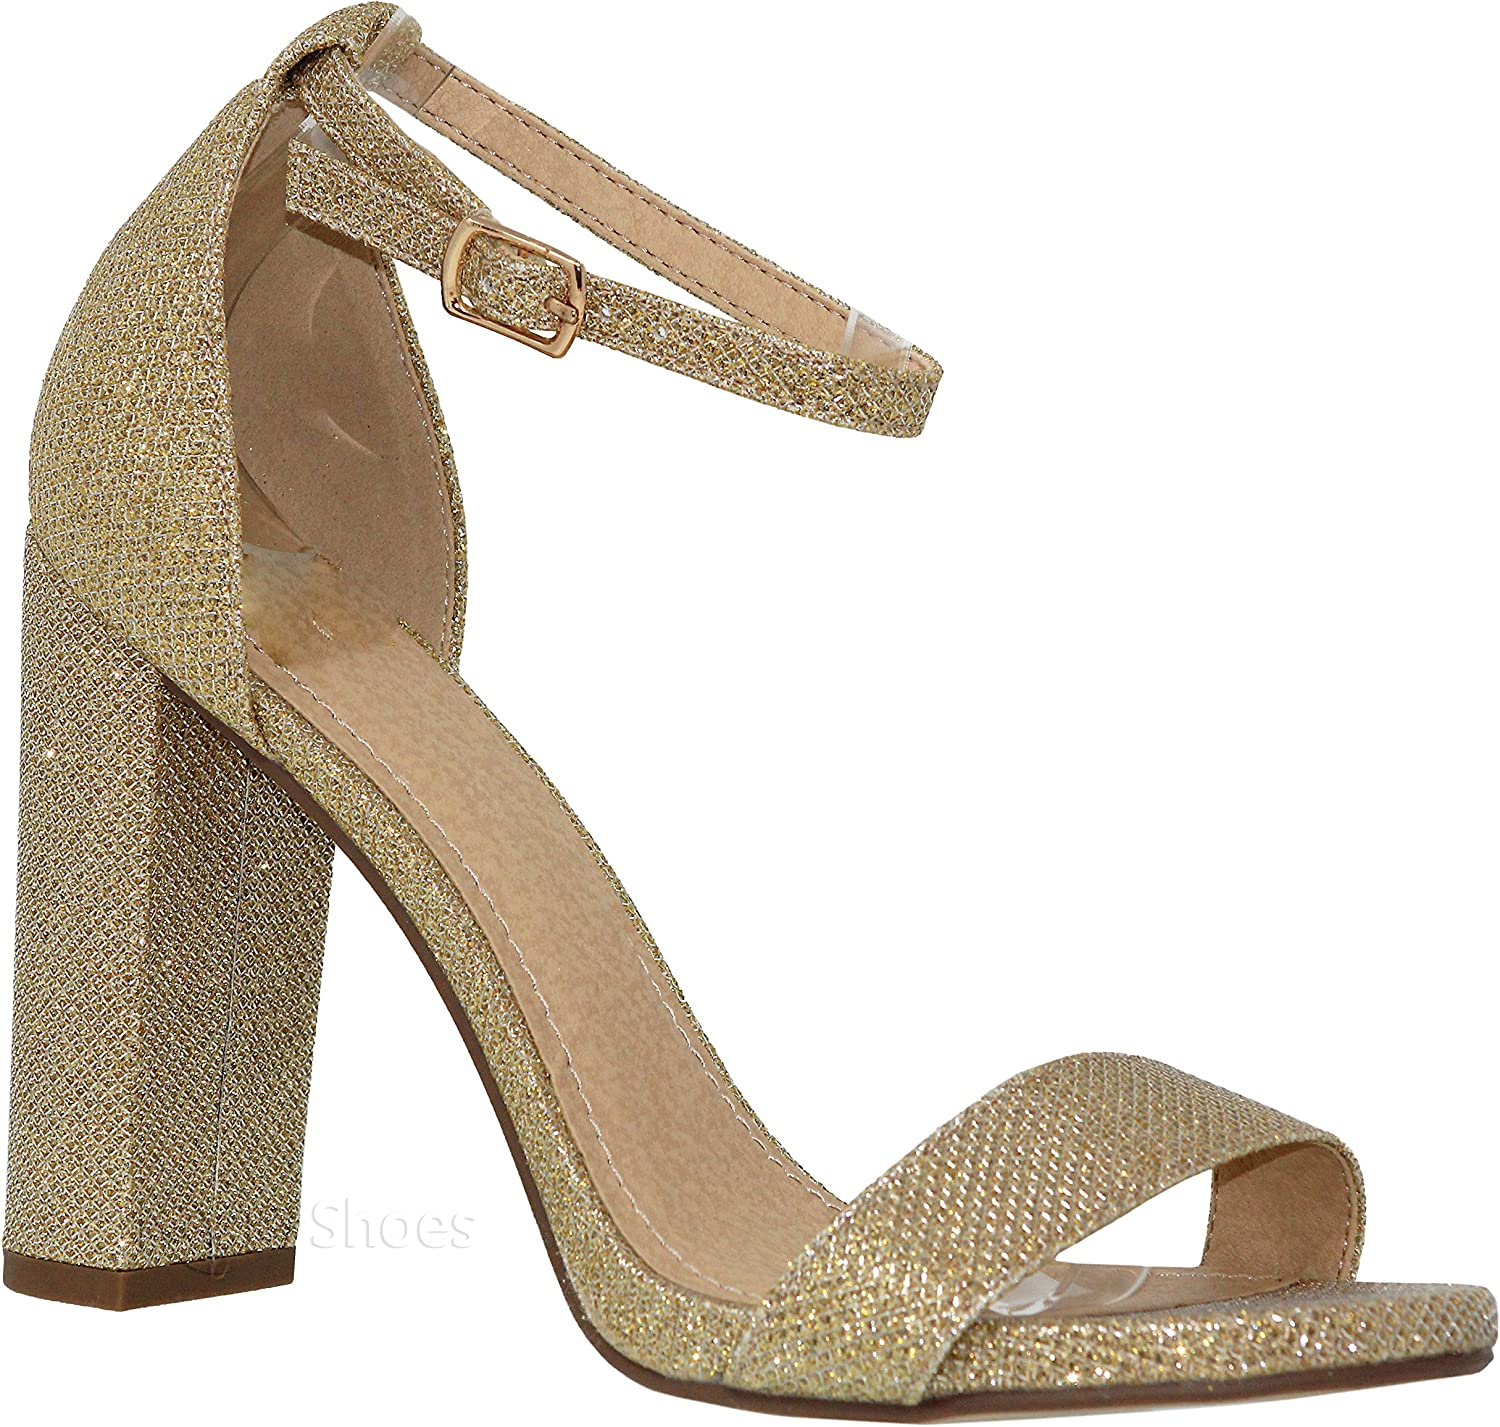 MVE shoes Women's Fashion Ankle Strap Chunky Heeled-Sandals